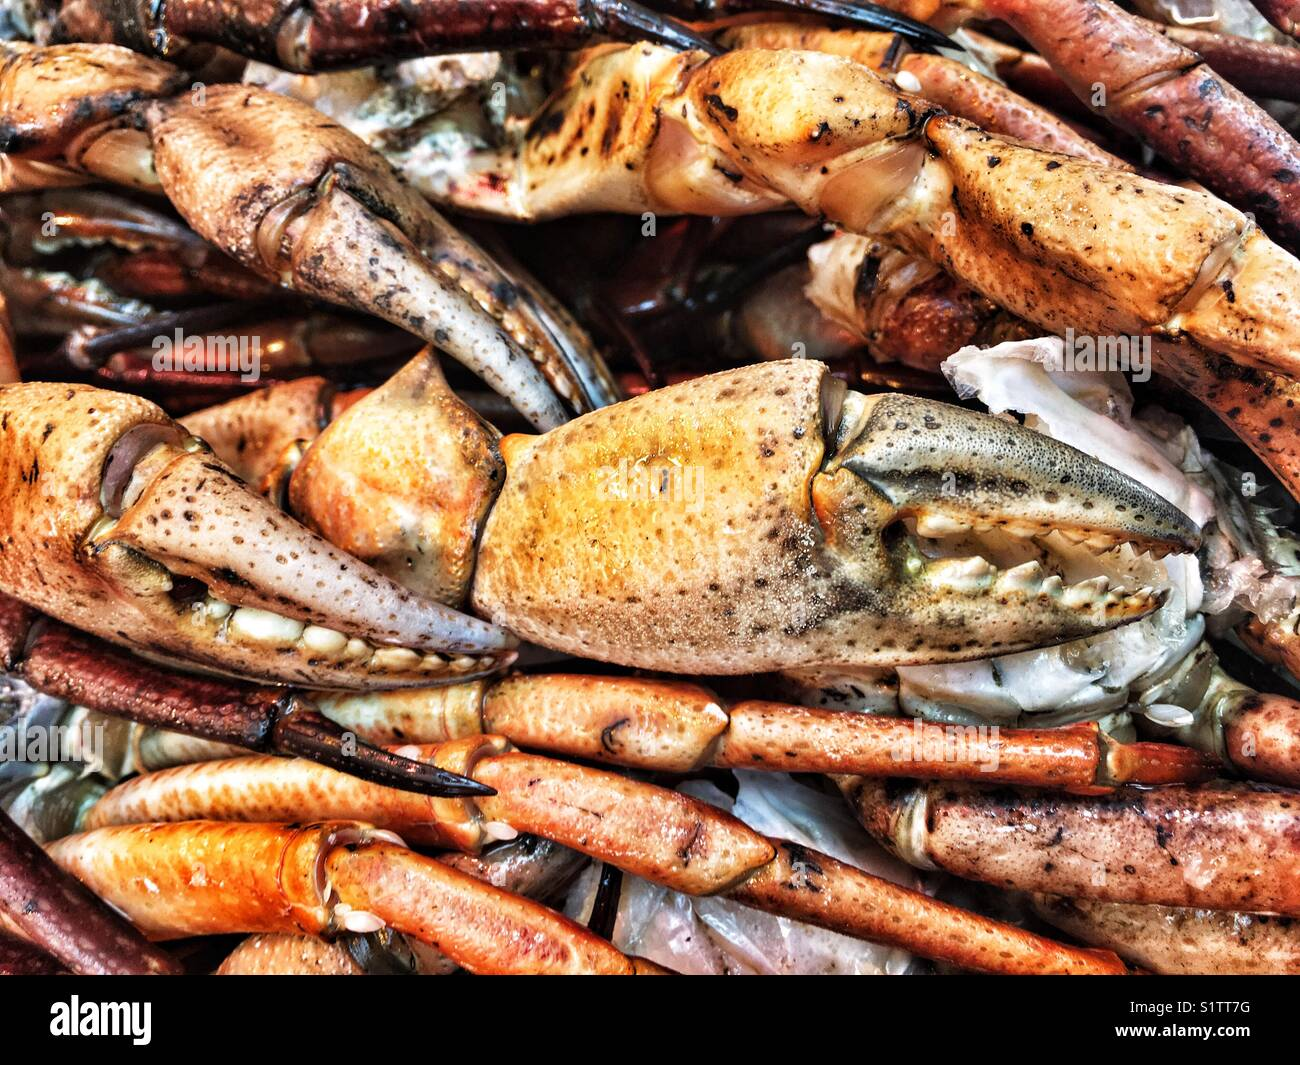 Crabs legs and claws on the market - Stock Image